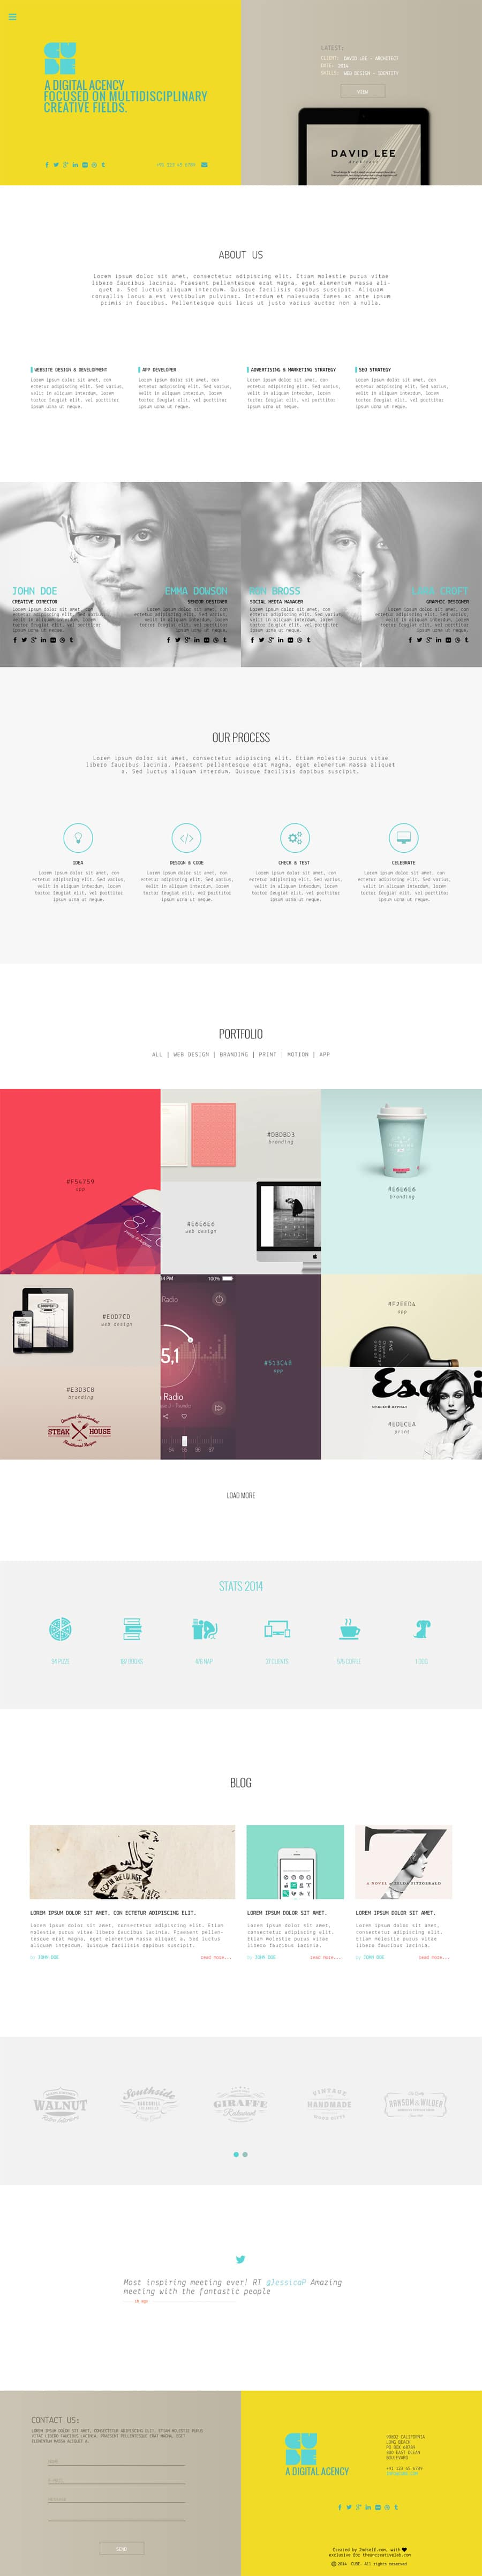 CUBE - Free Web Template PSD